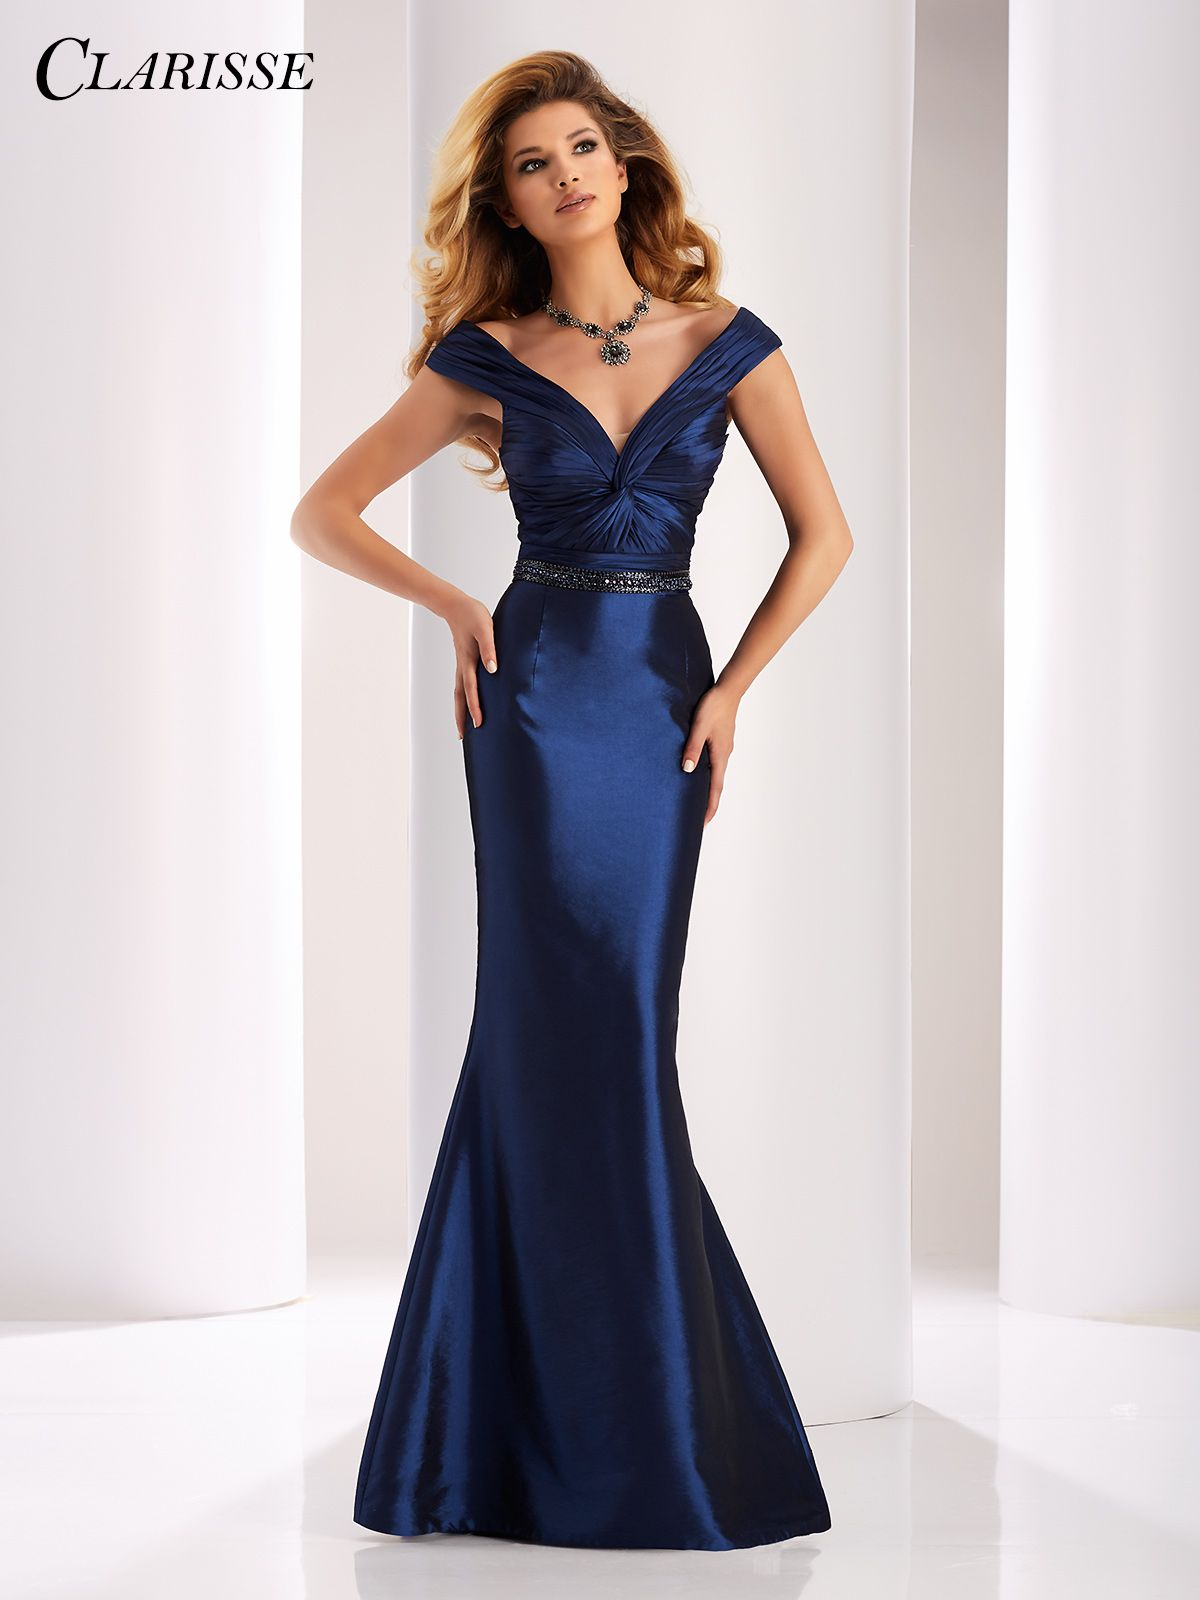 Clarisse Formal Gown 4862 with Detachable Train | Navy blue prom ...